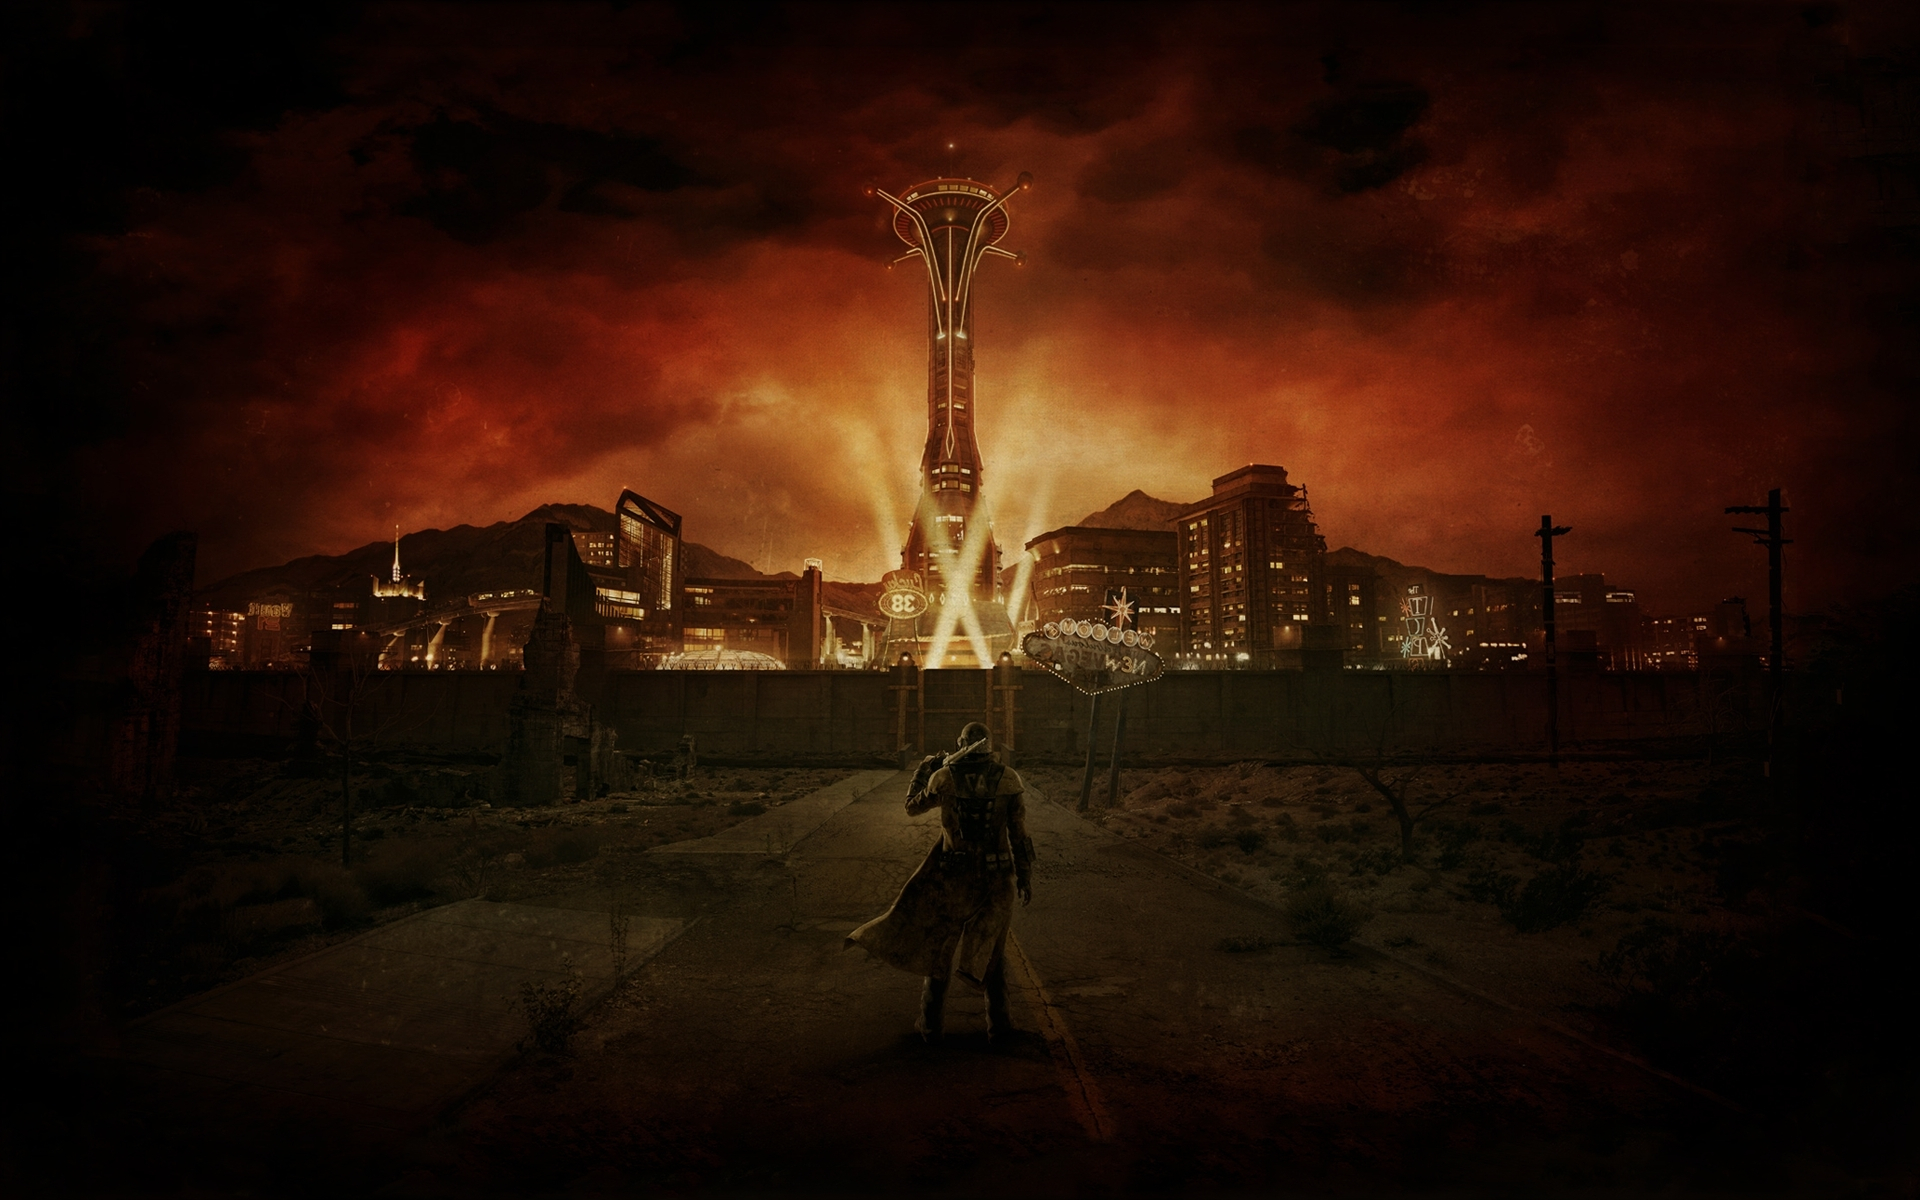 video games fallout new vegas digital art wasteland apocalyptic